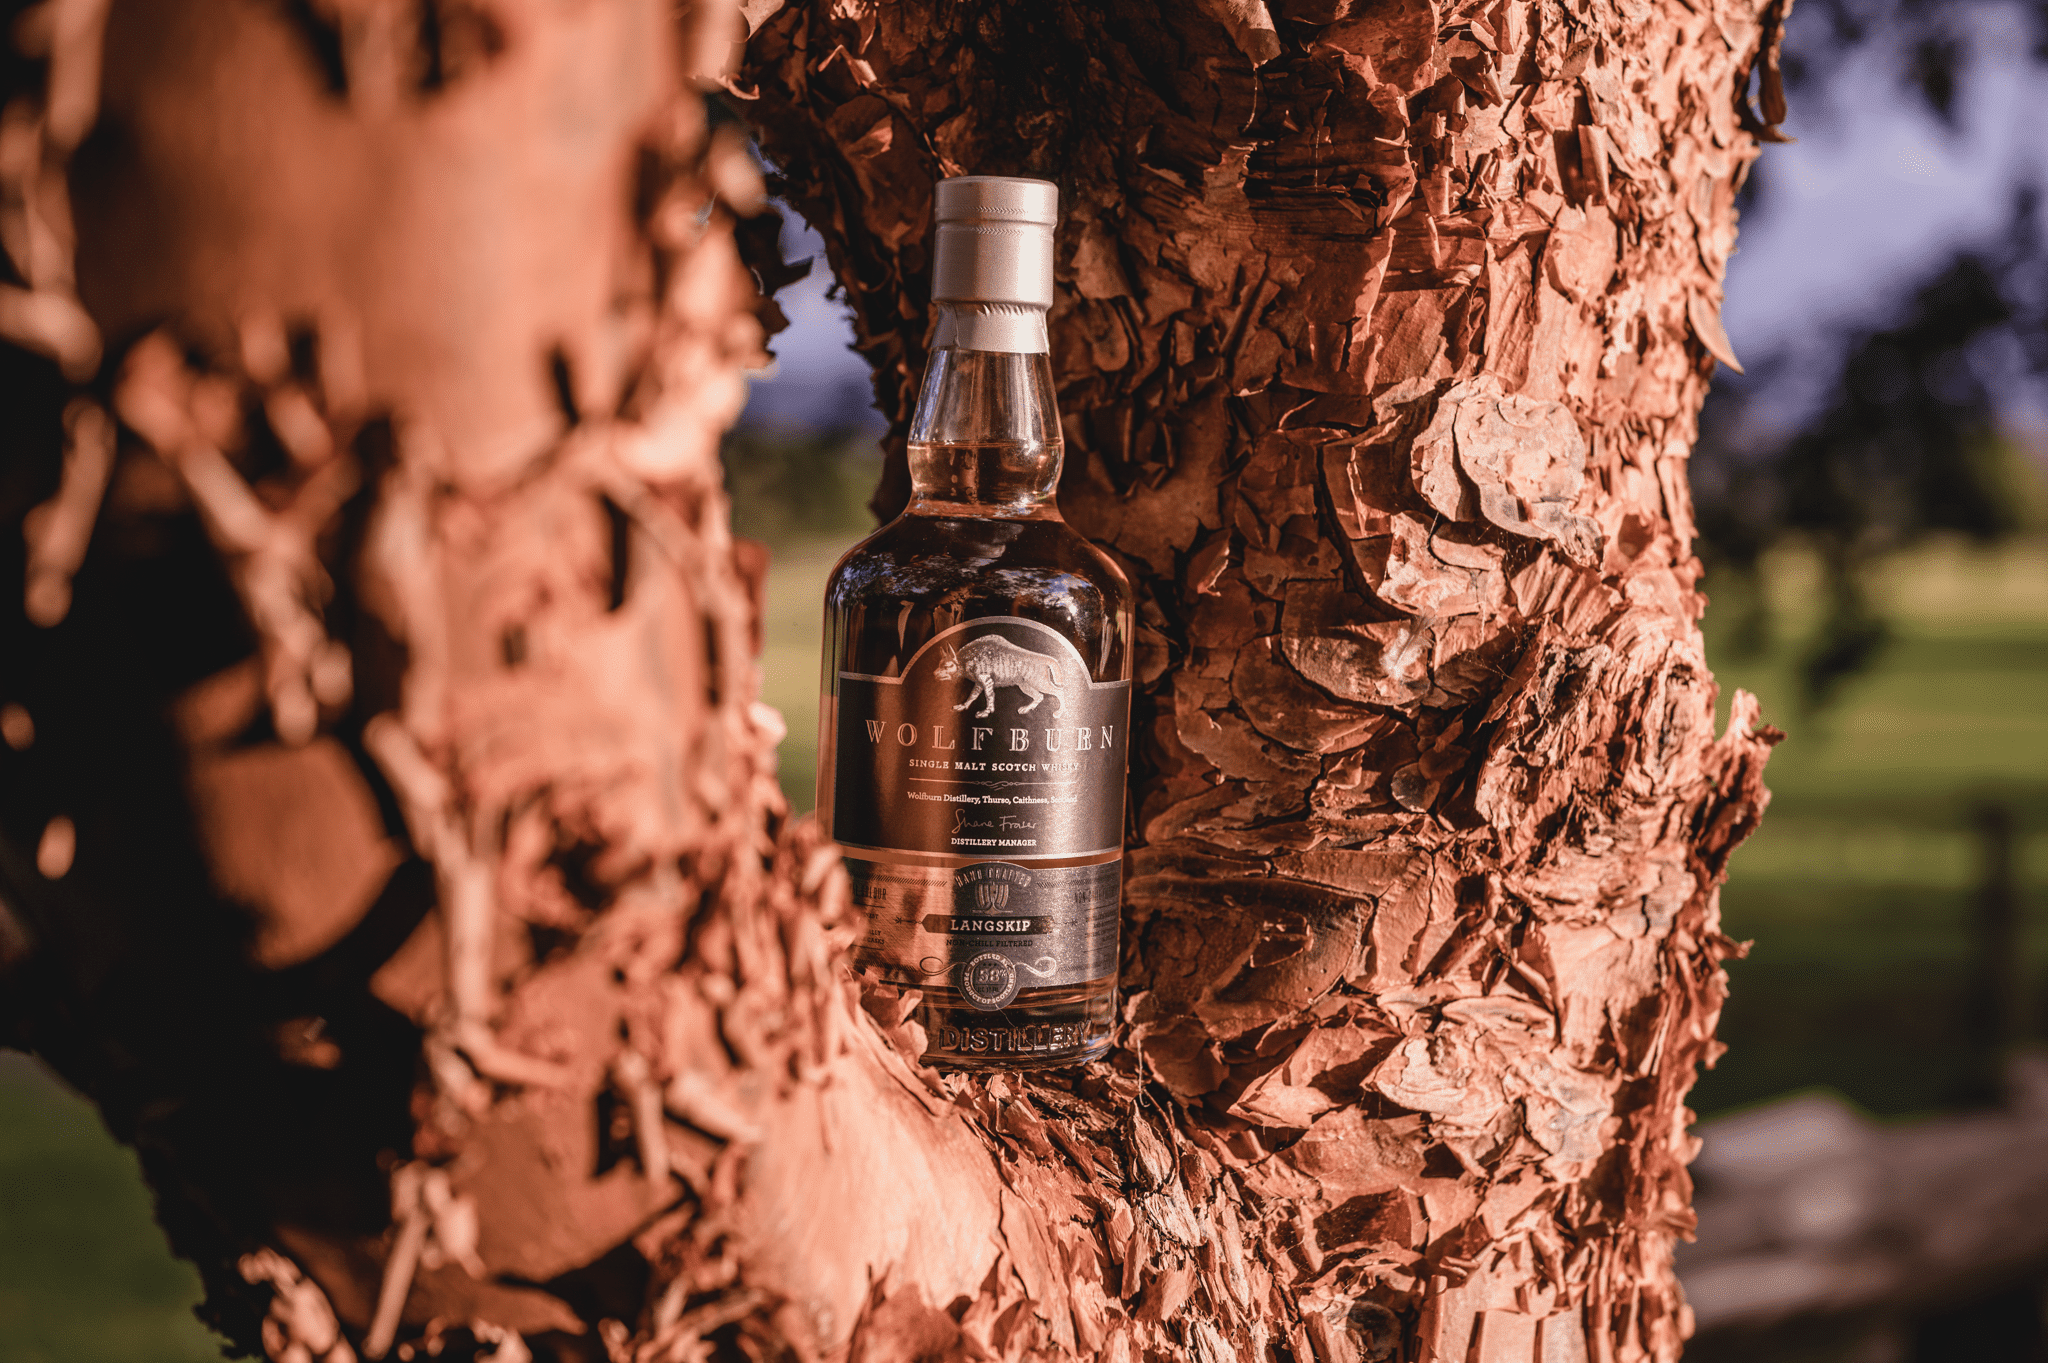 August 2020 – Wolfburn Langskip, Summerton Whisky Club - Excellence in Whisky